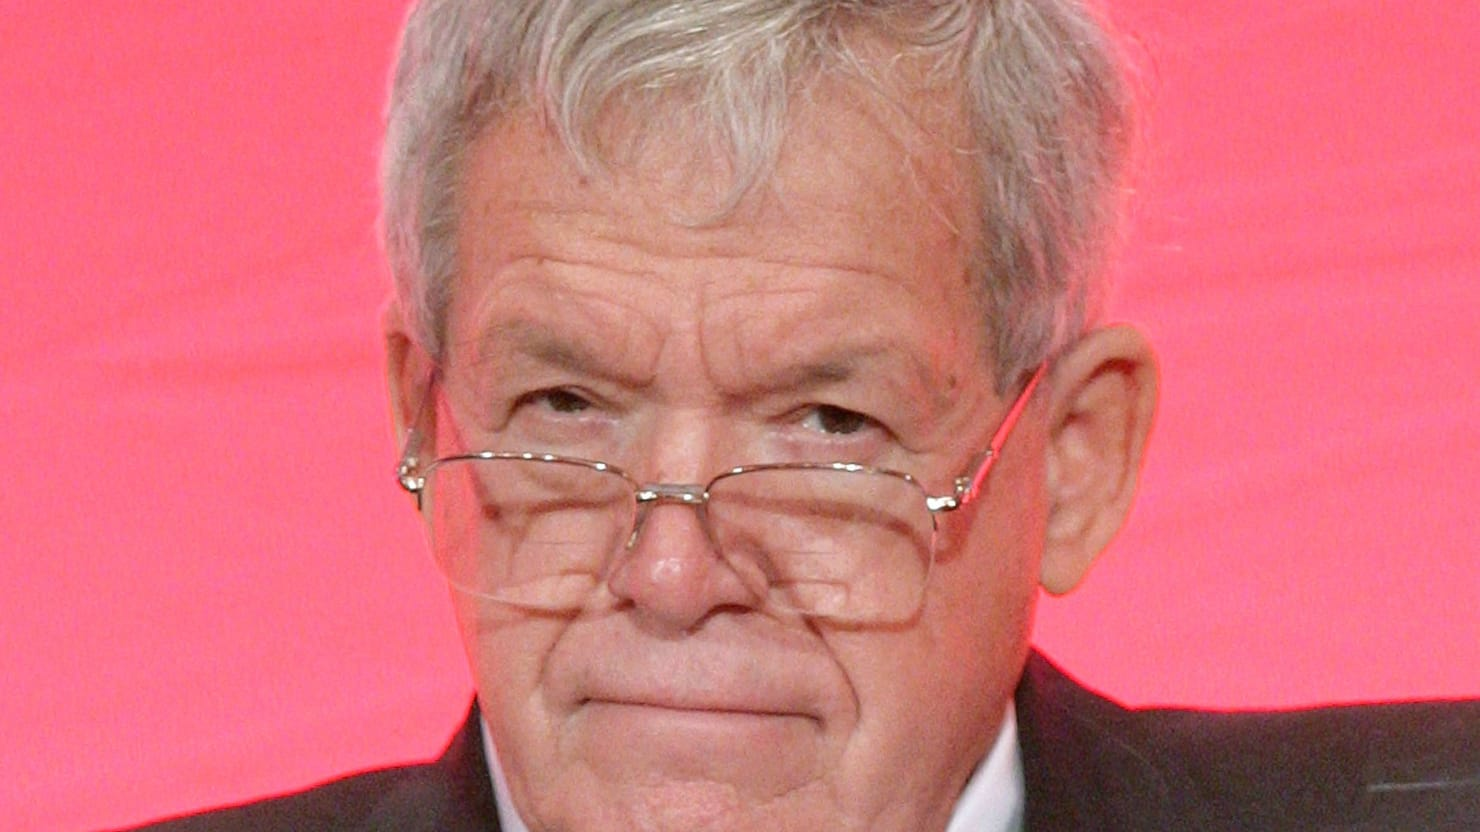 Denny Hastert Disses the 'Hastert Rule': It 'Never Really Existed'